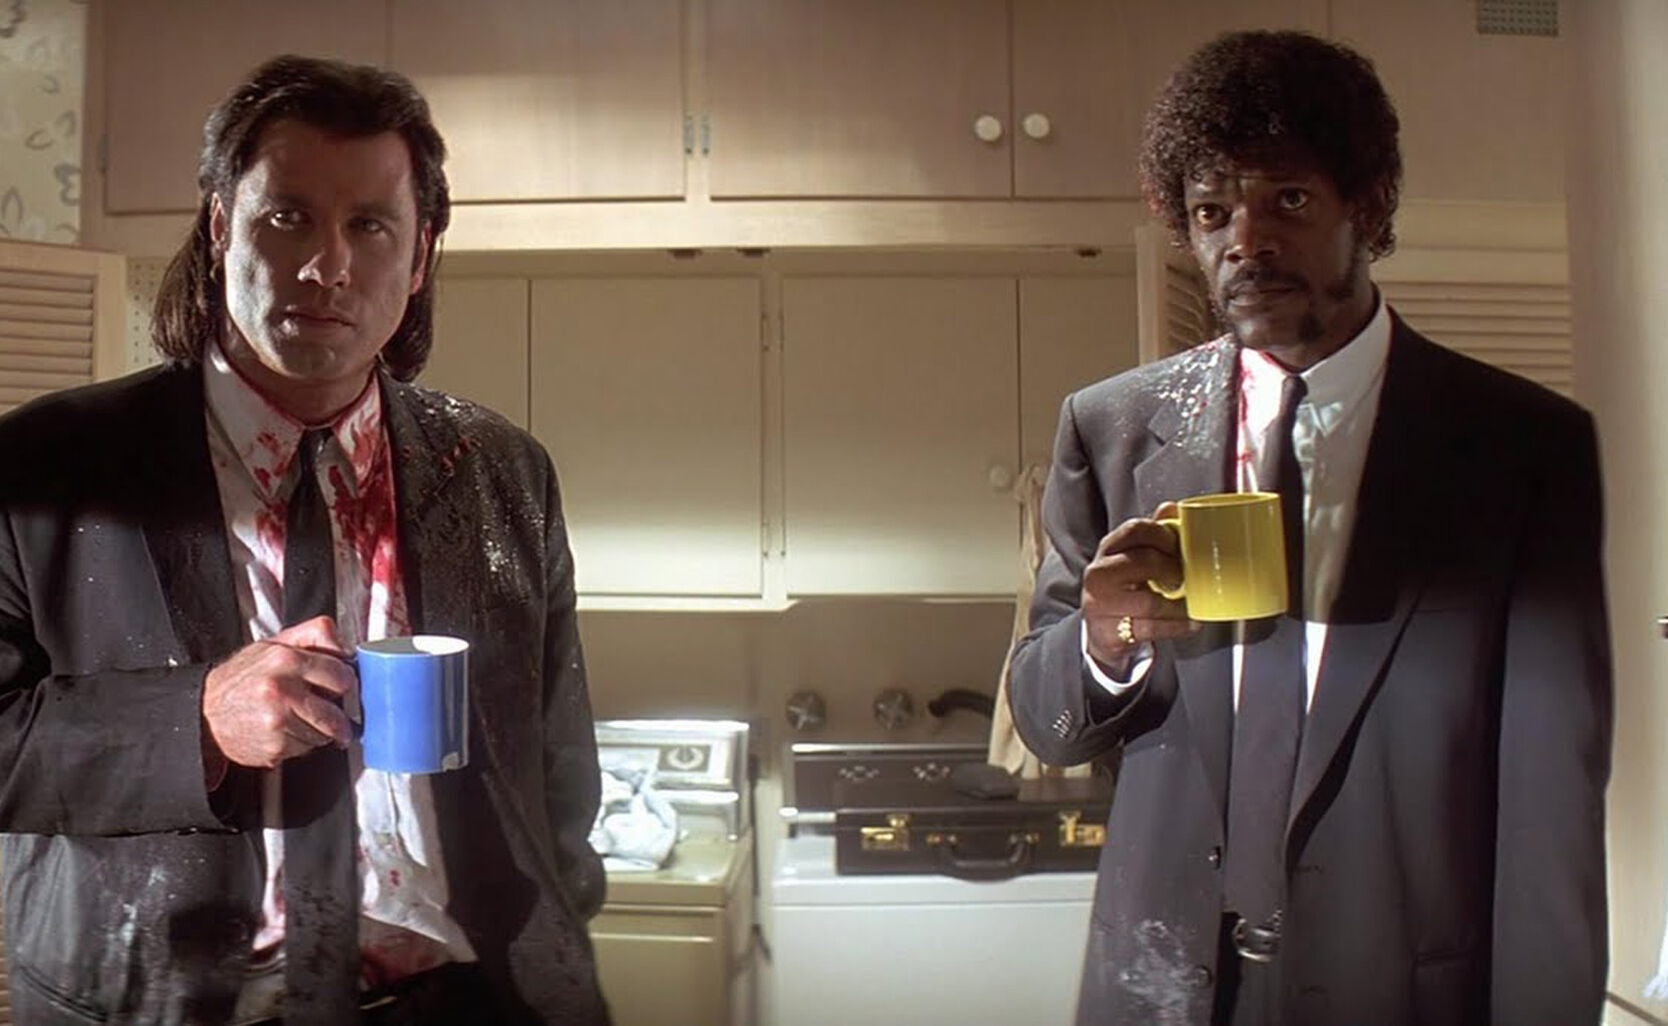 """Scene from the film """"Pulp Fiction"""""""